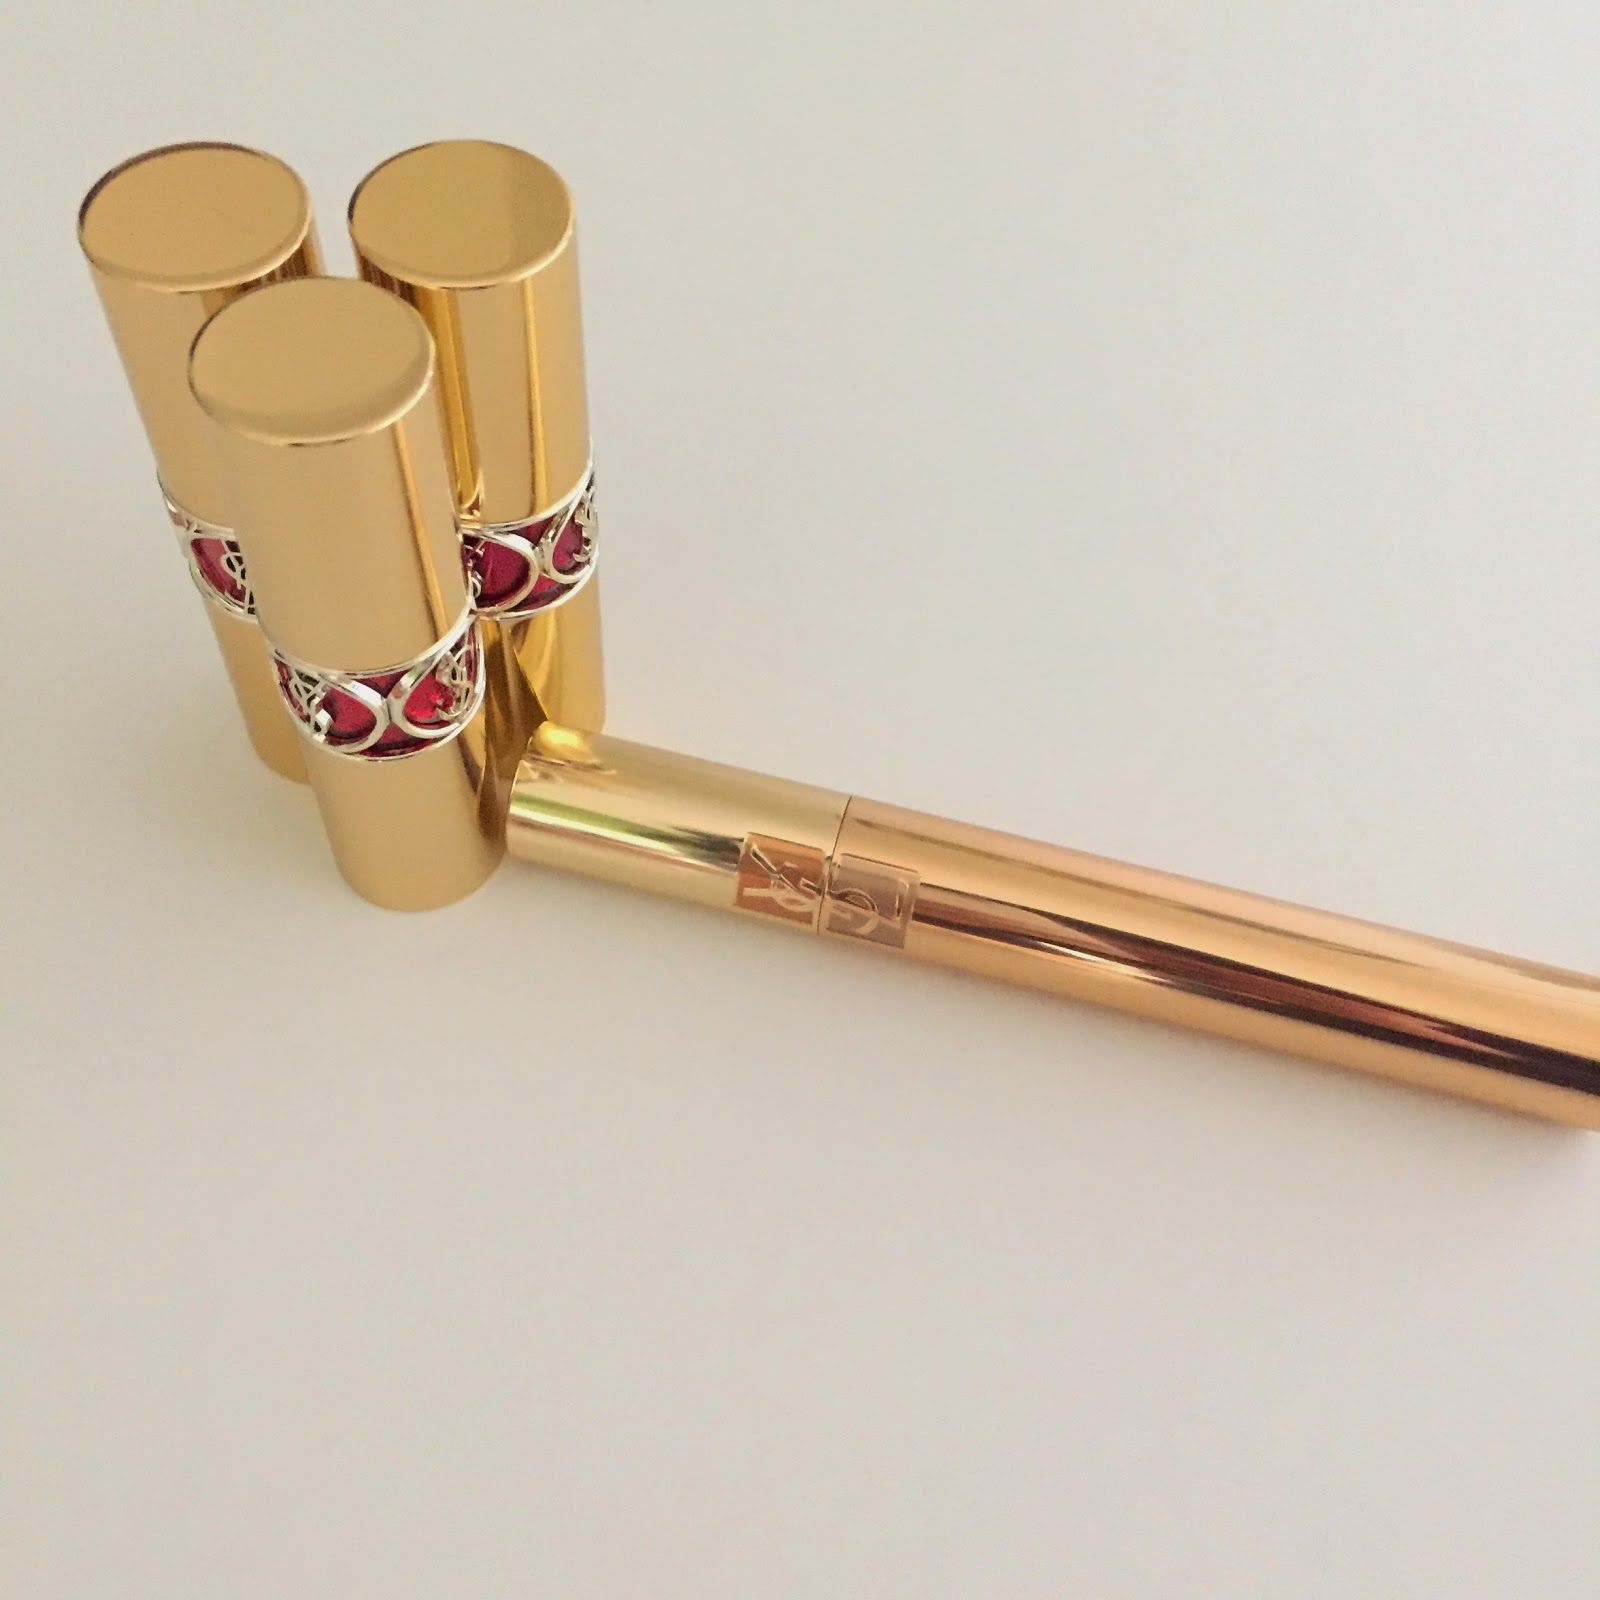 Yves Saint Laurent Lipstick Mascara Review